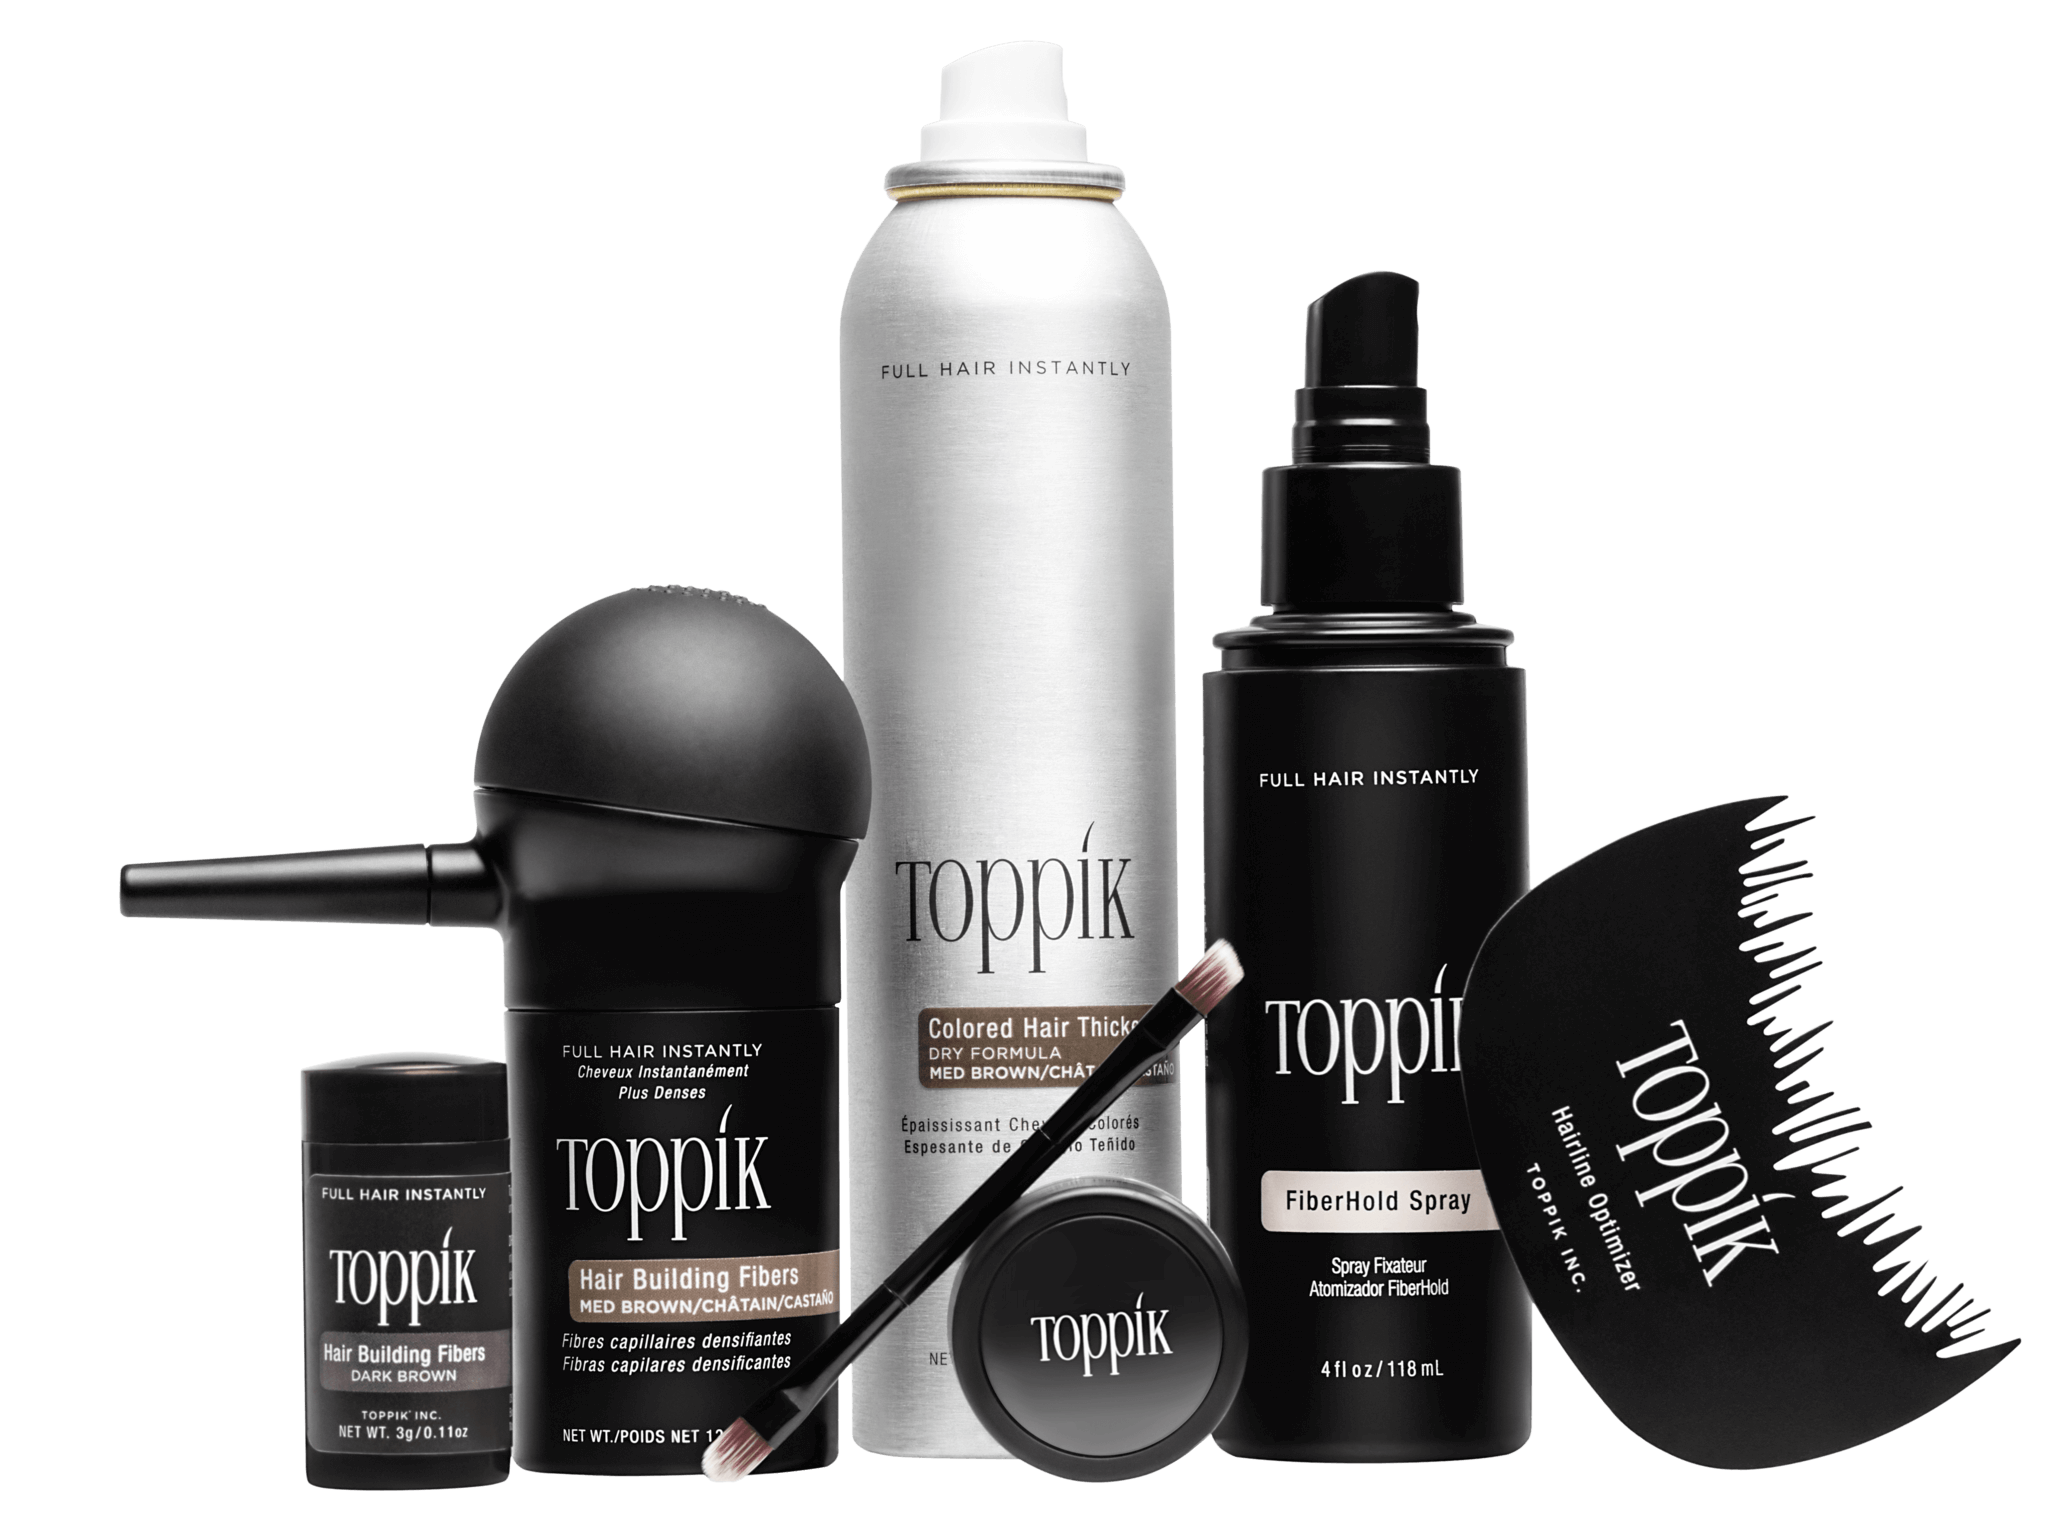 full collection of toppik hair thinning products